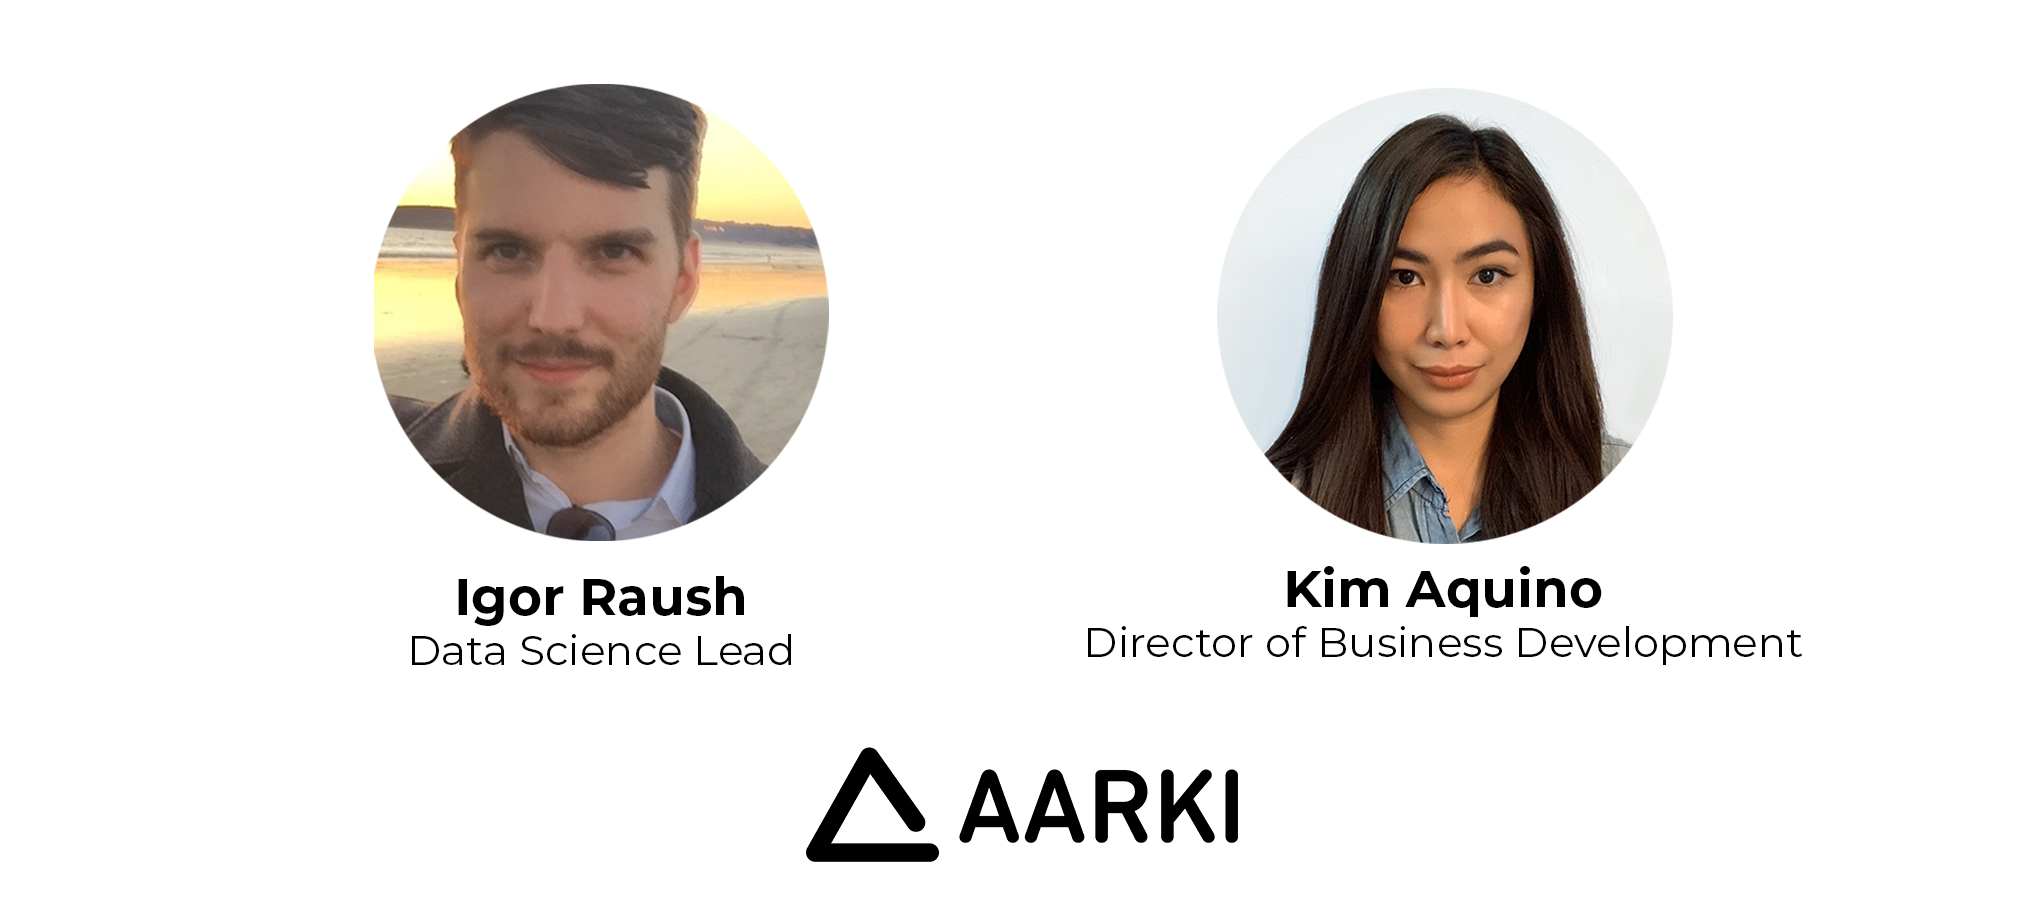 Aarki Team headshots, Igor, Kim